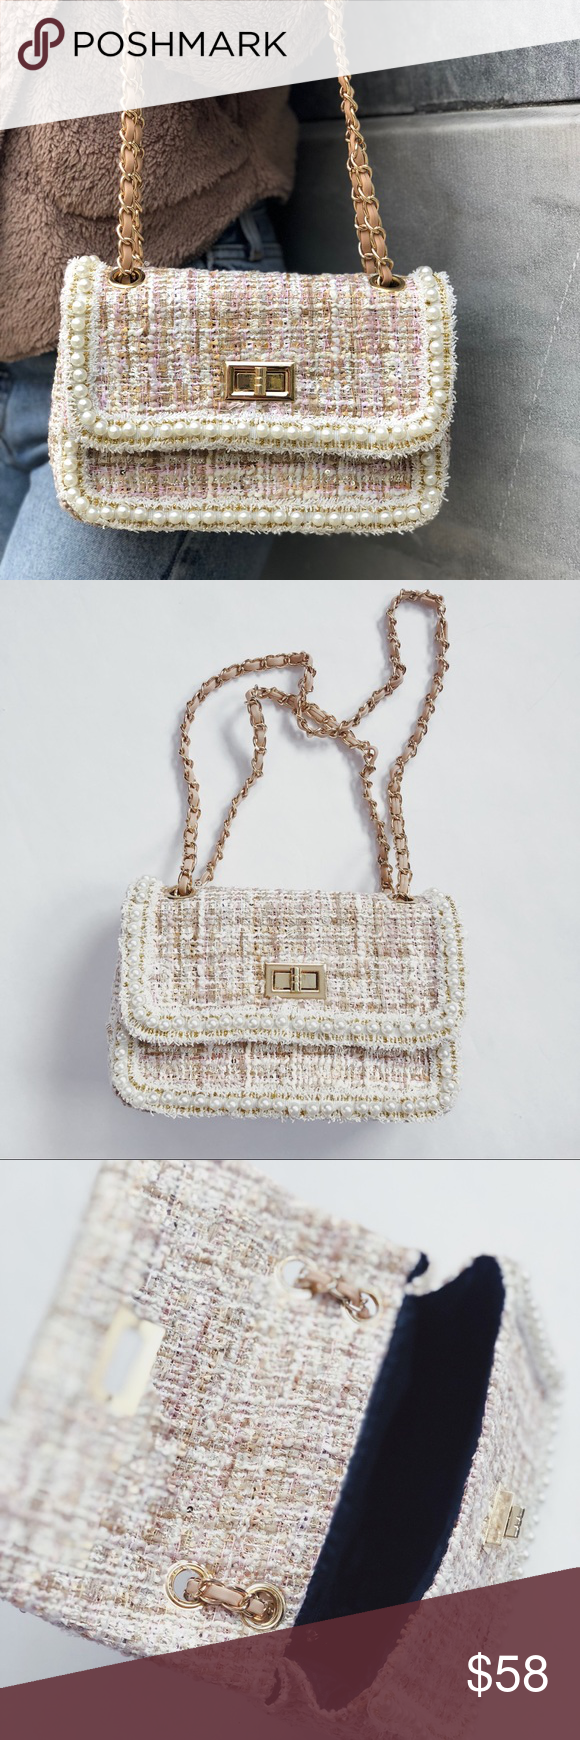 Fifi Blush Tweed Crossbody Bag The Handbag Features A Material